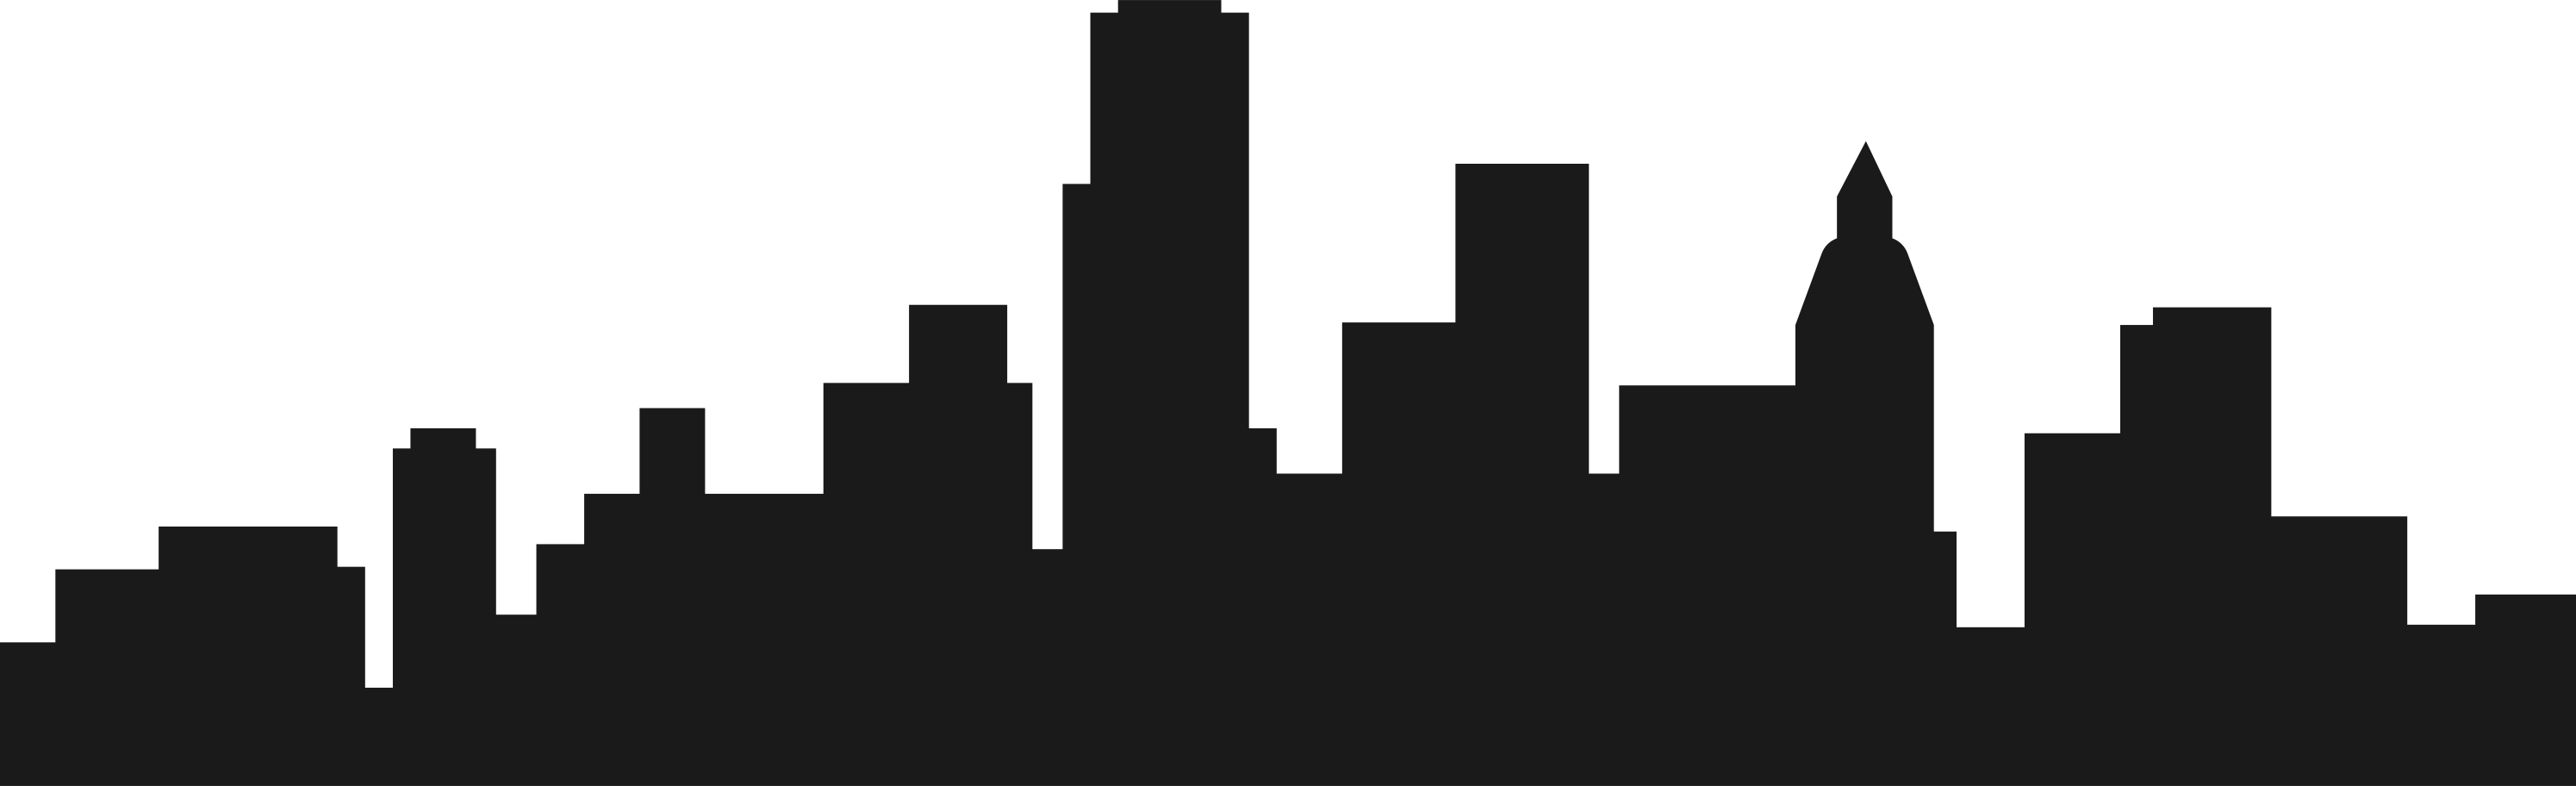 style cityscape images in PNG and SVG | Icons8 Illustrations